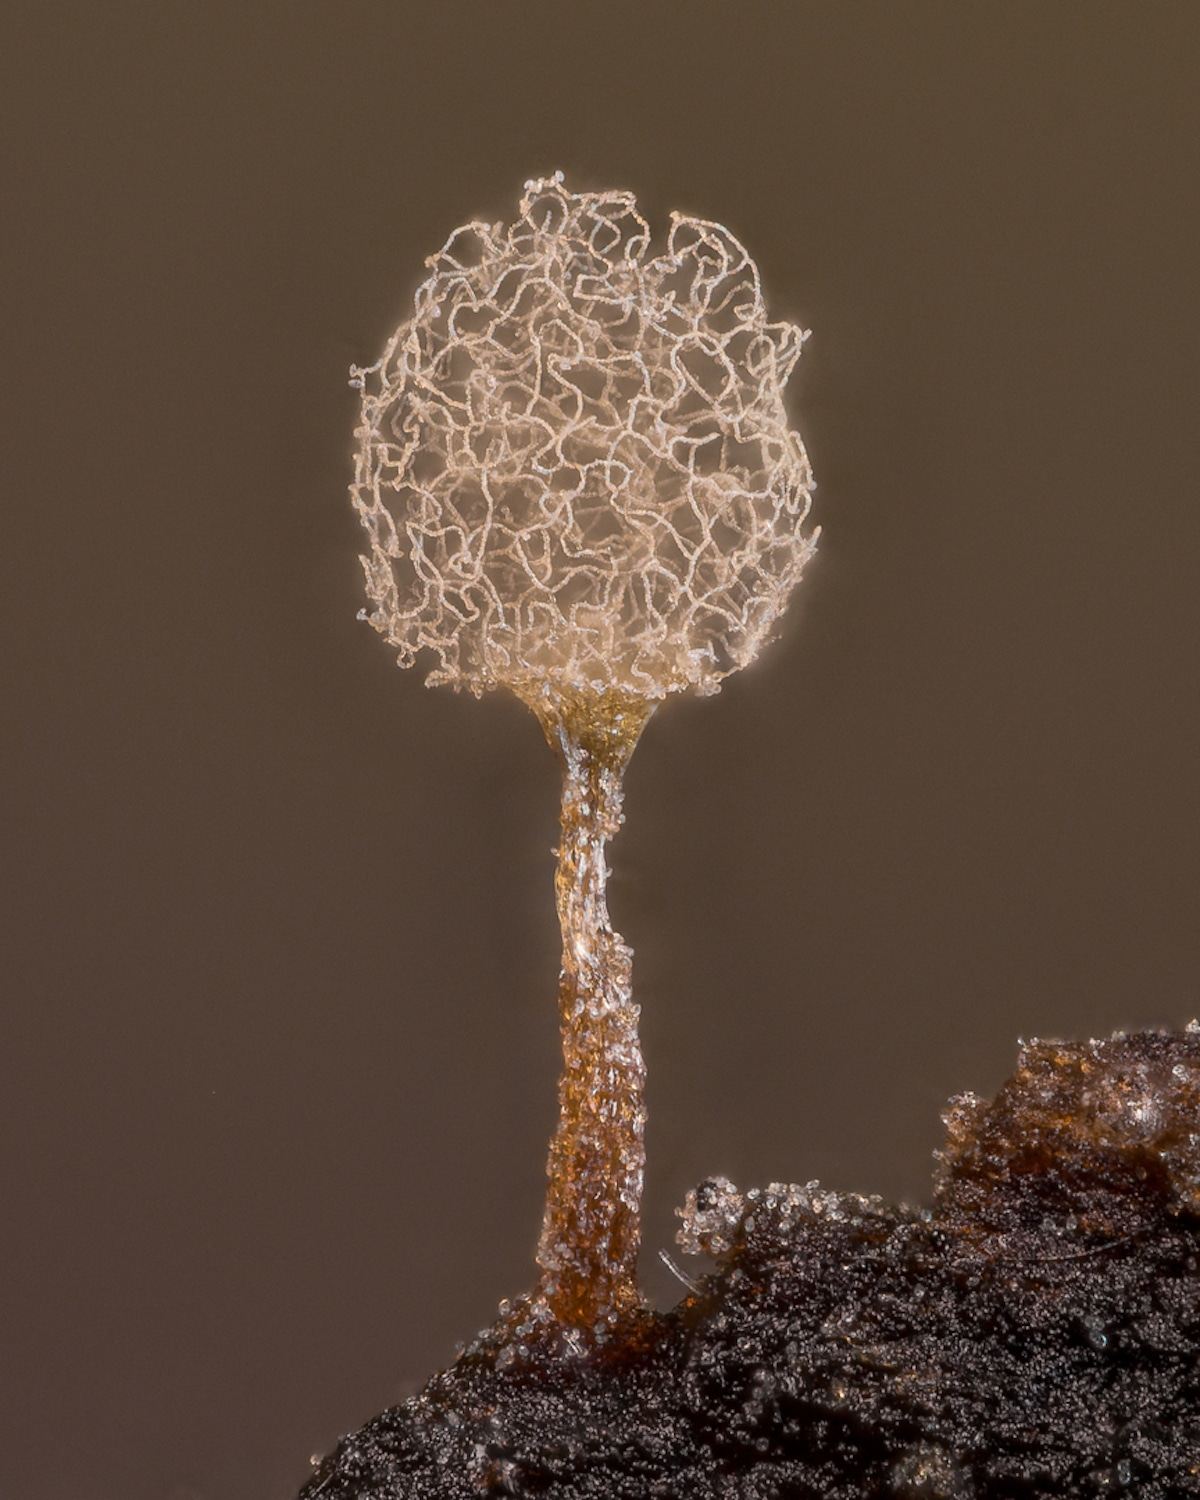 Stacked Image of Slime Mold